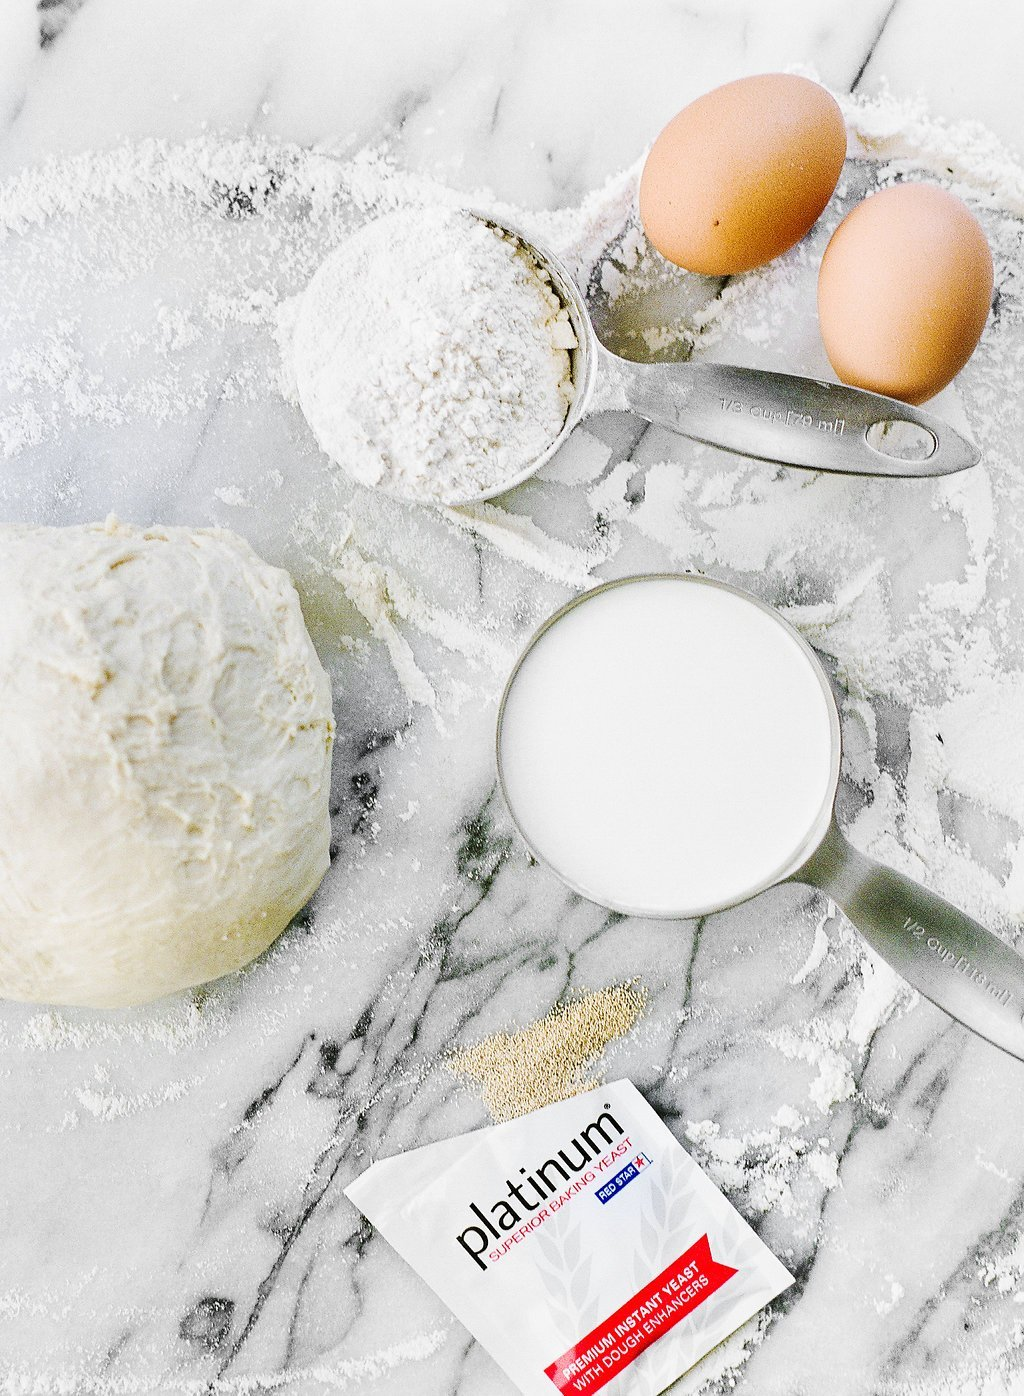 This foolproof Ultimate Simple Dough Recipe can be used for practically ANYTHING! Cinnamon rolls, bread rolls, sandwich bread, pizza, or whatever your heart desires.